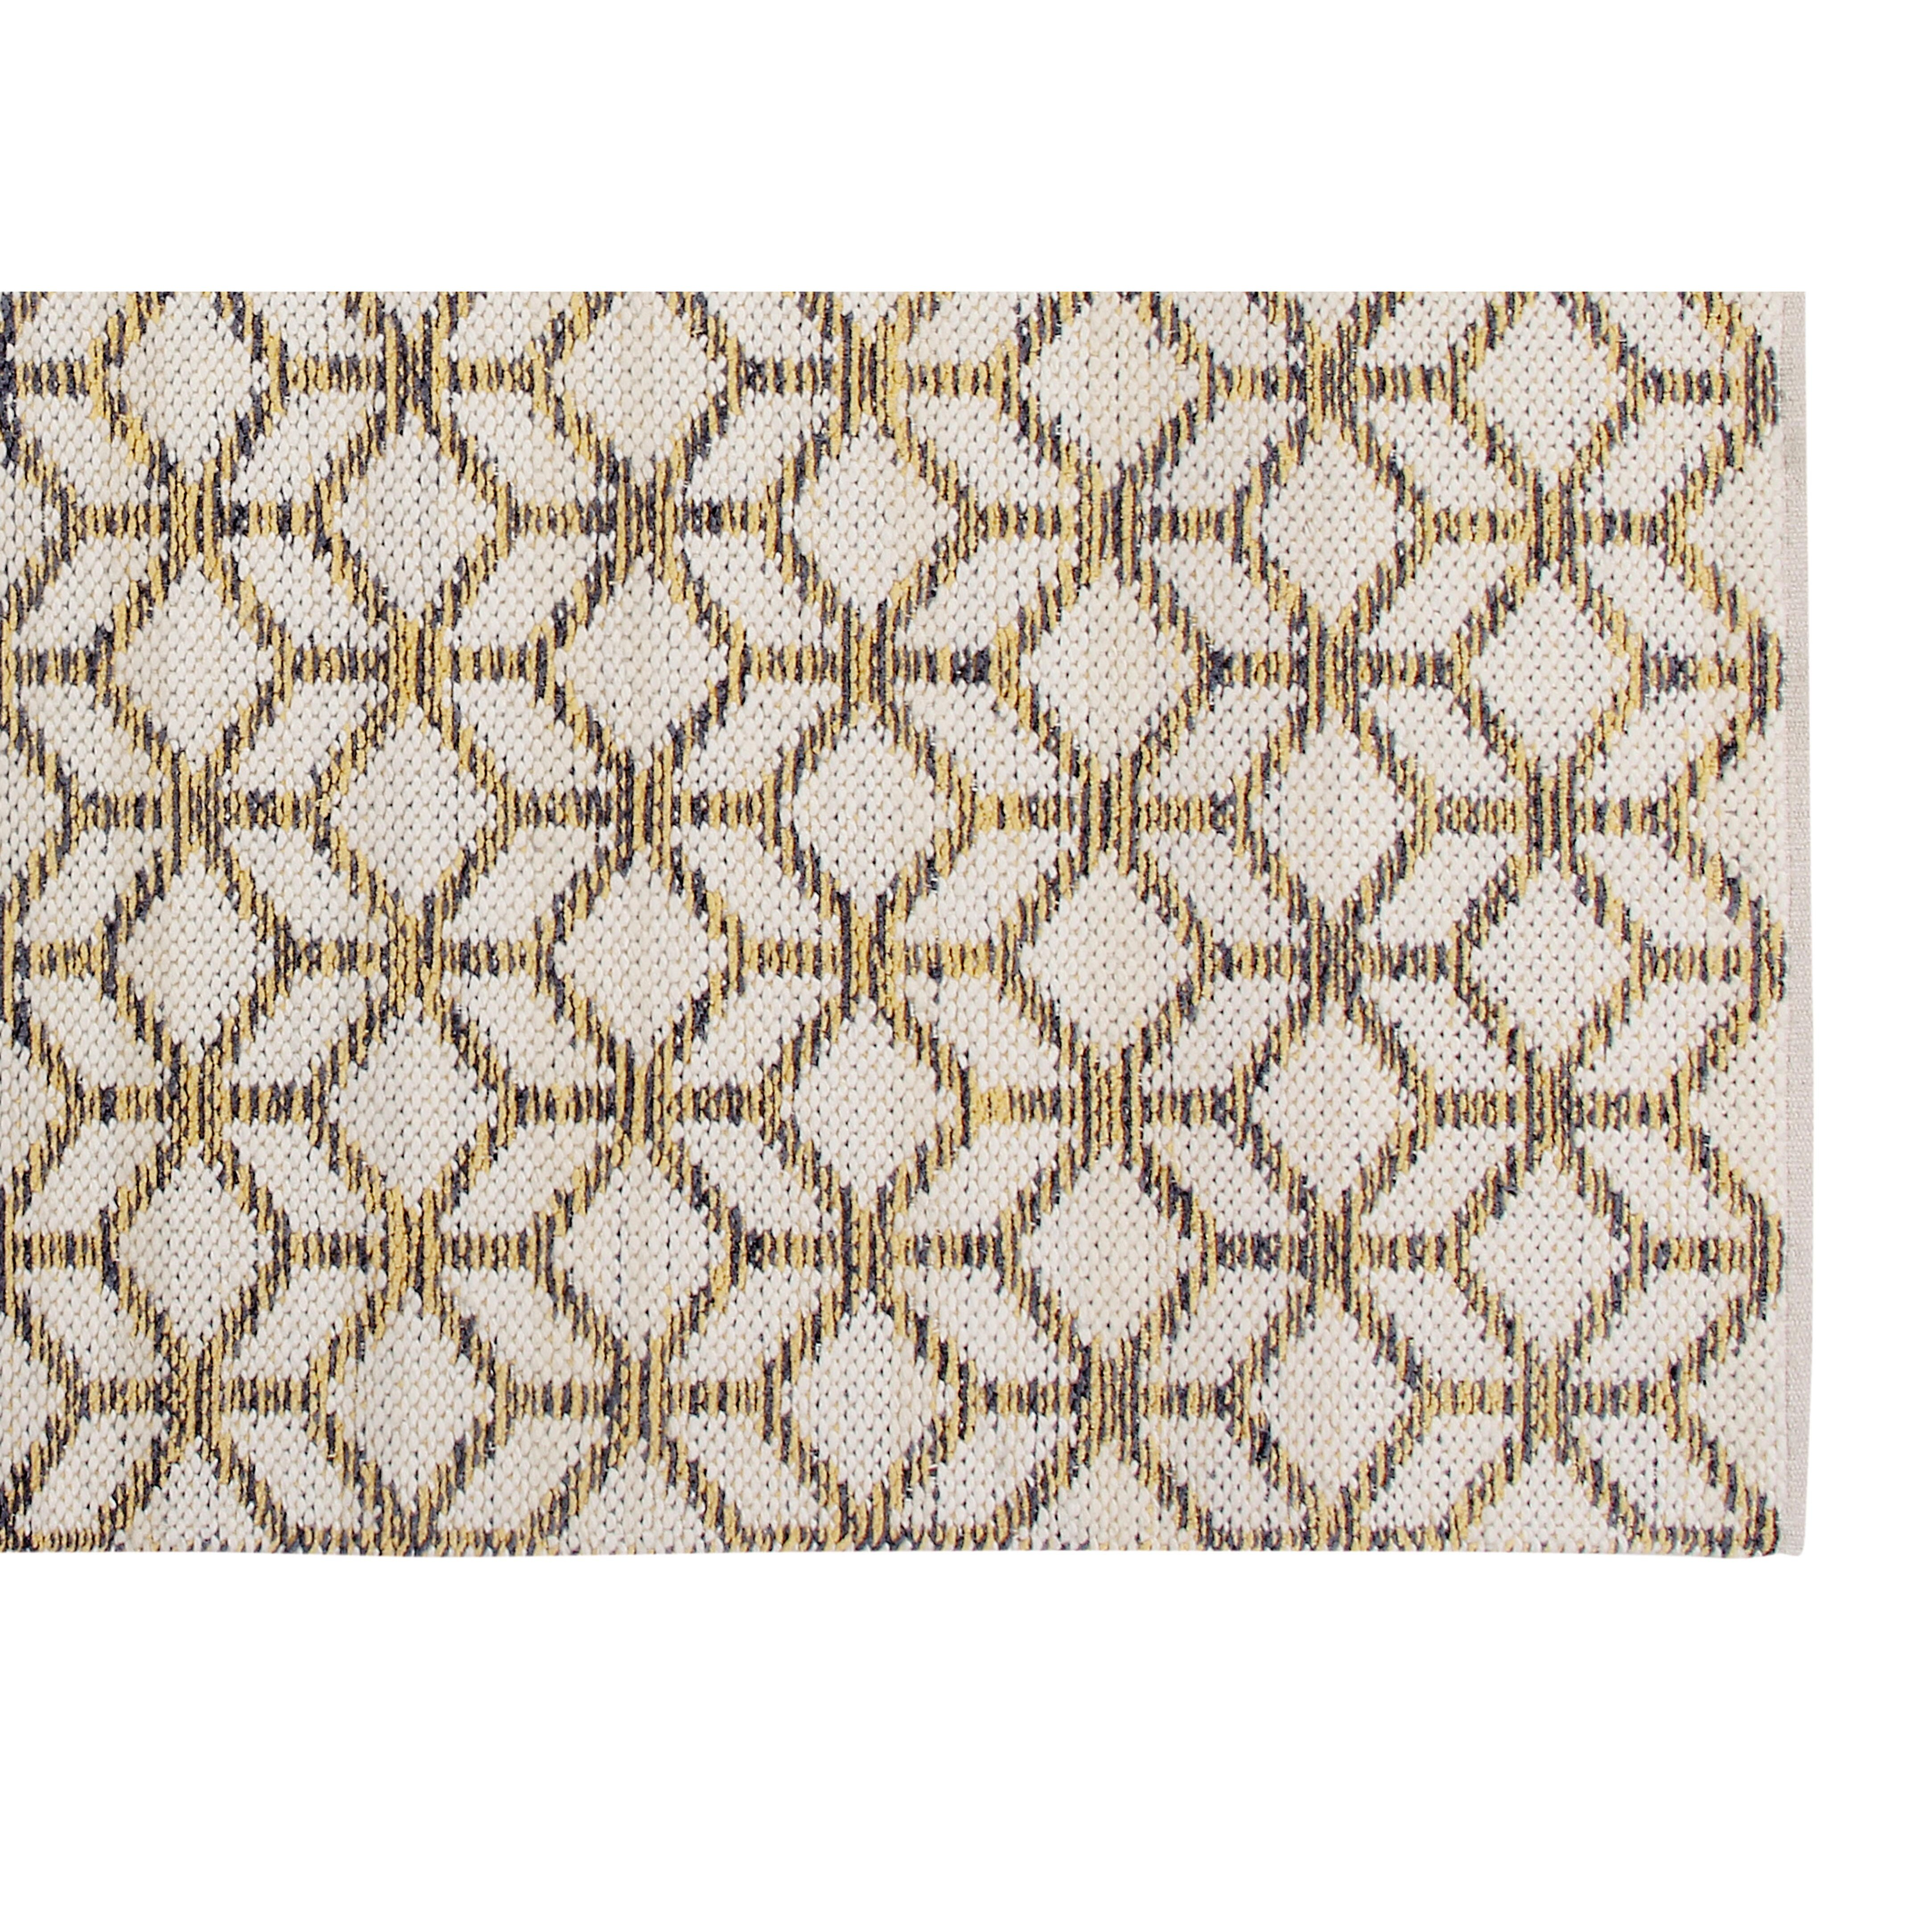 Bath Rugs Yellow Grey: Cozy Home And Bath Hand-Woven Yellow/Gray Area Rug